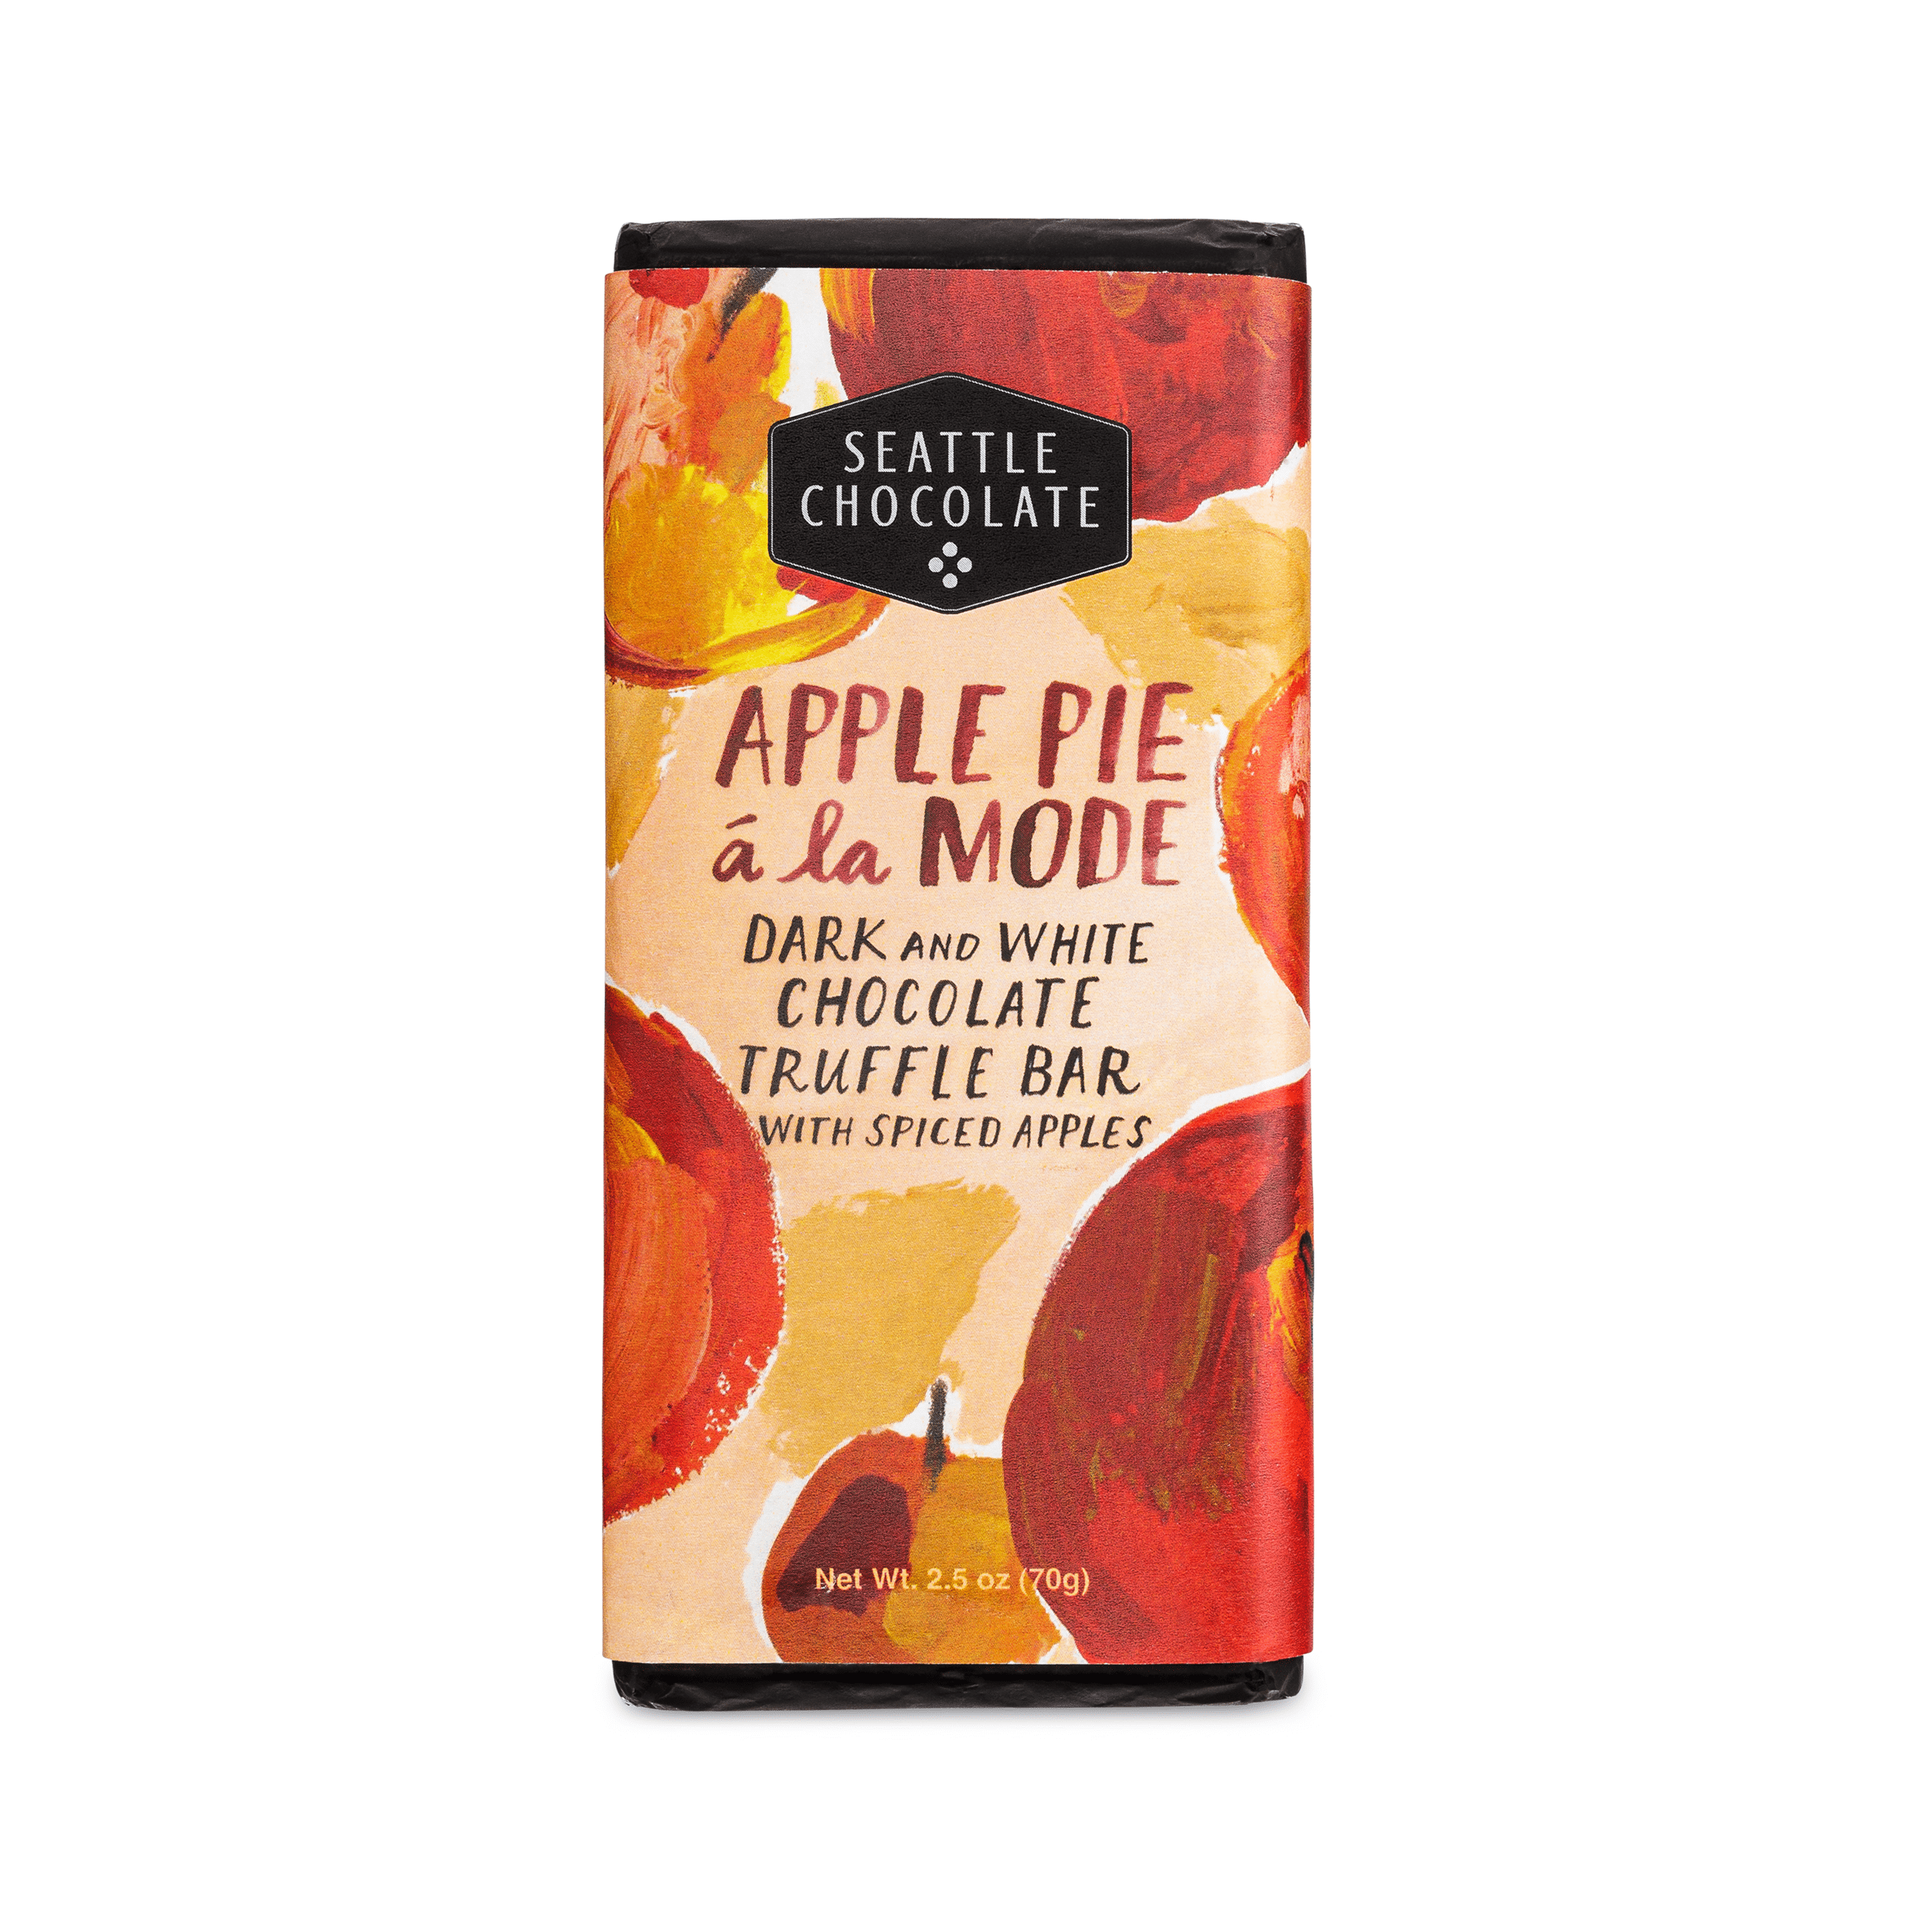 Apple Pie à la Mode Truffle Bar